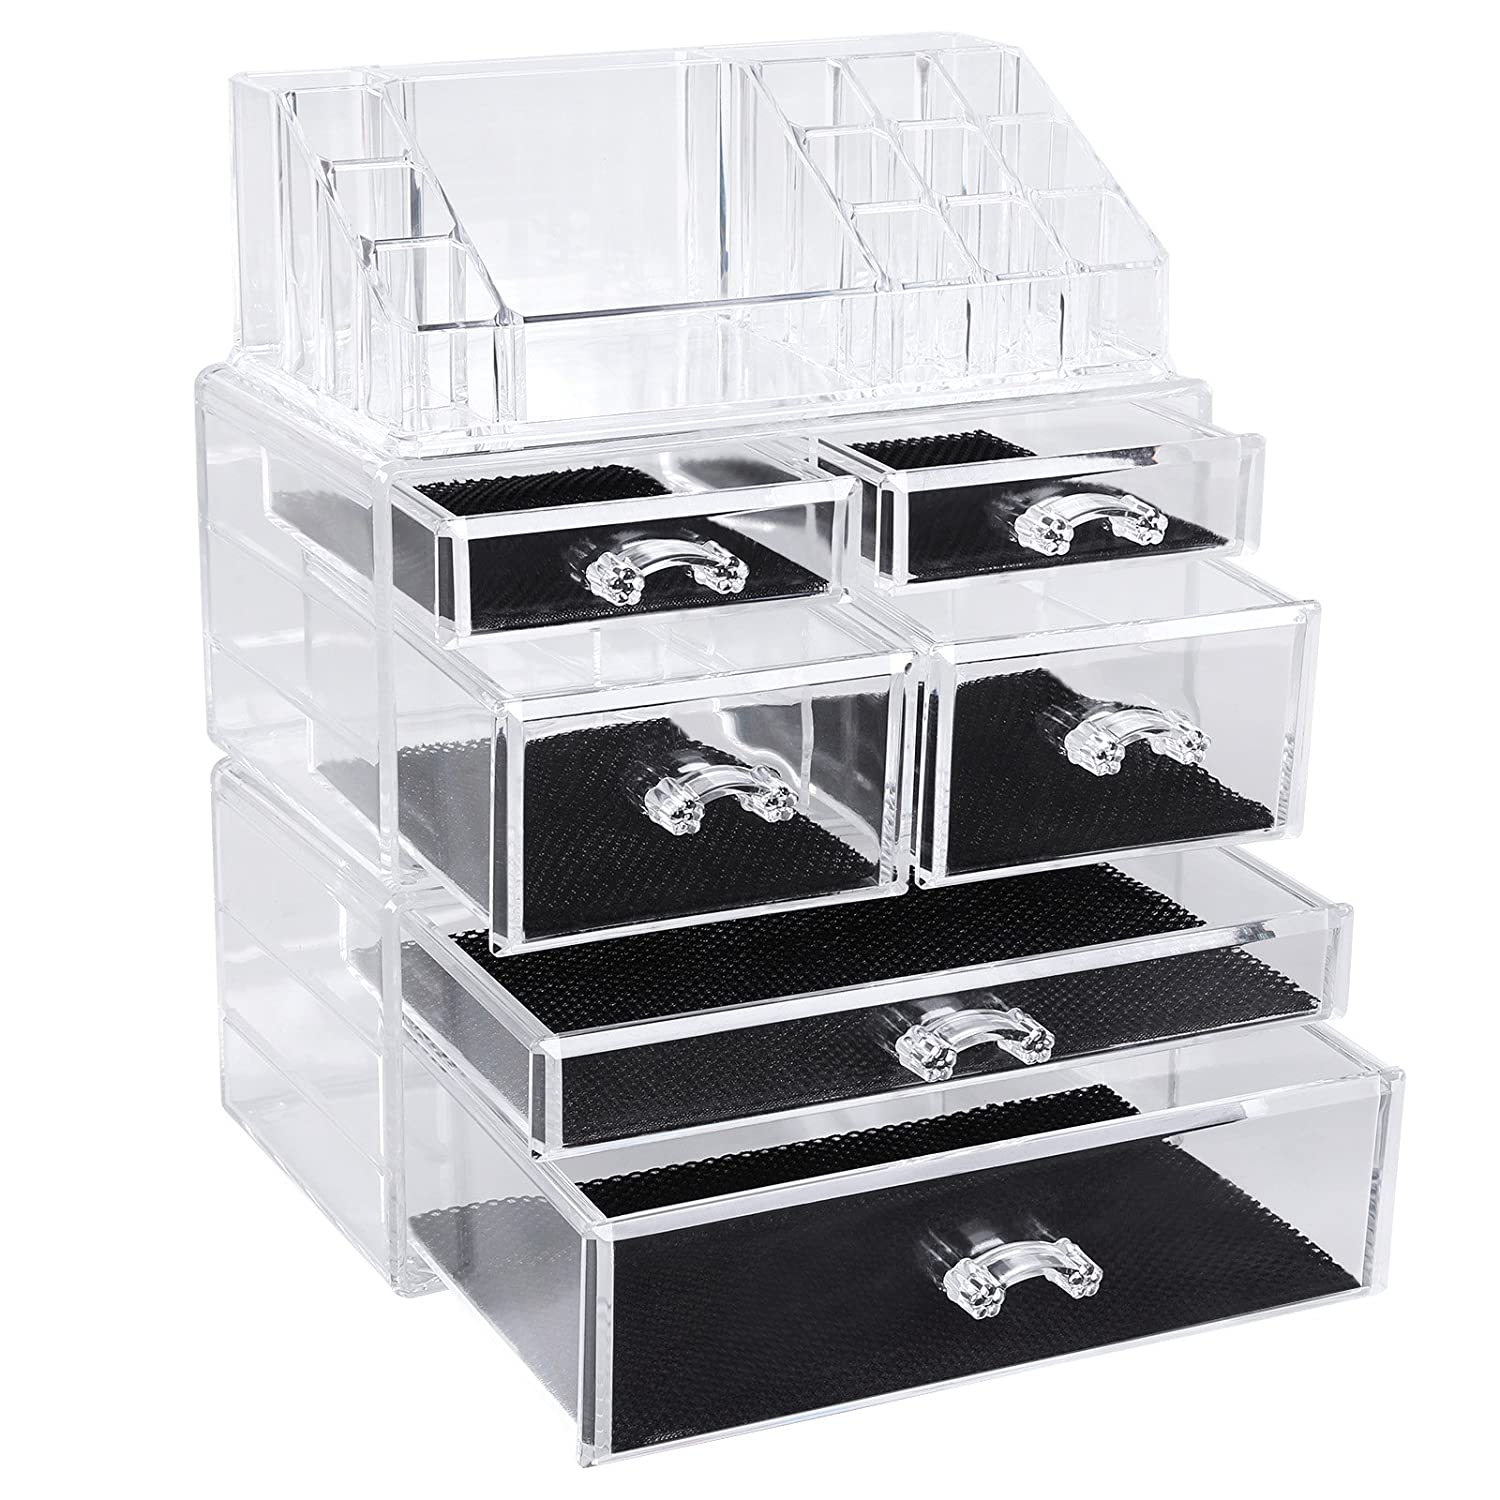 Songmics Acrylic Clear Makeup Organiser Cosmetic Storage Makeup Case 3